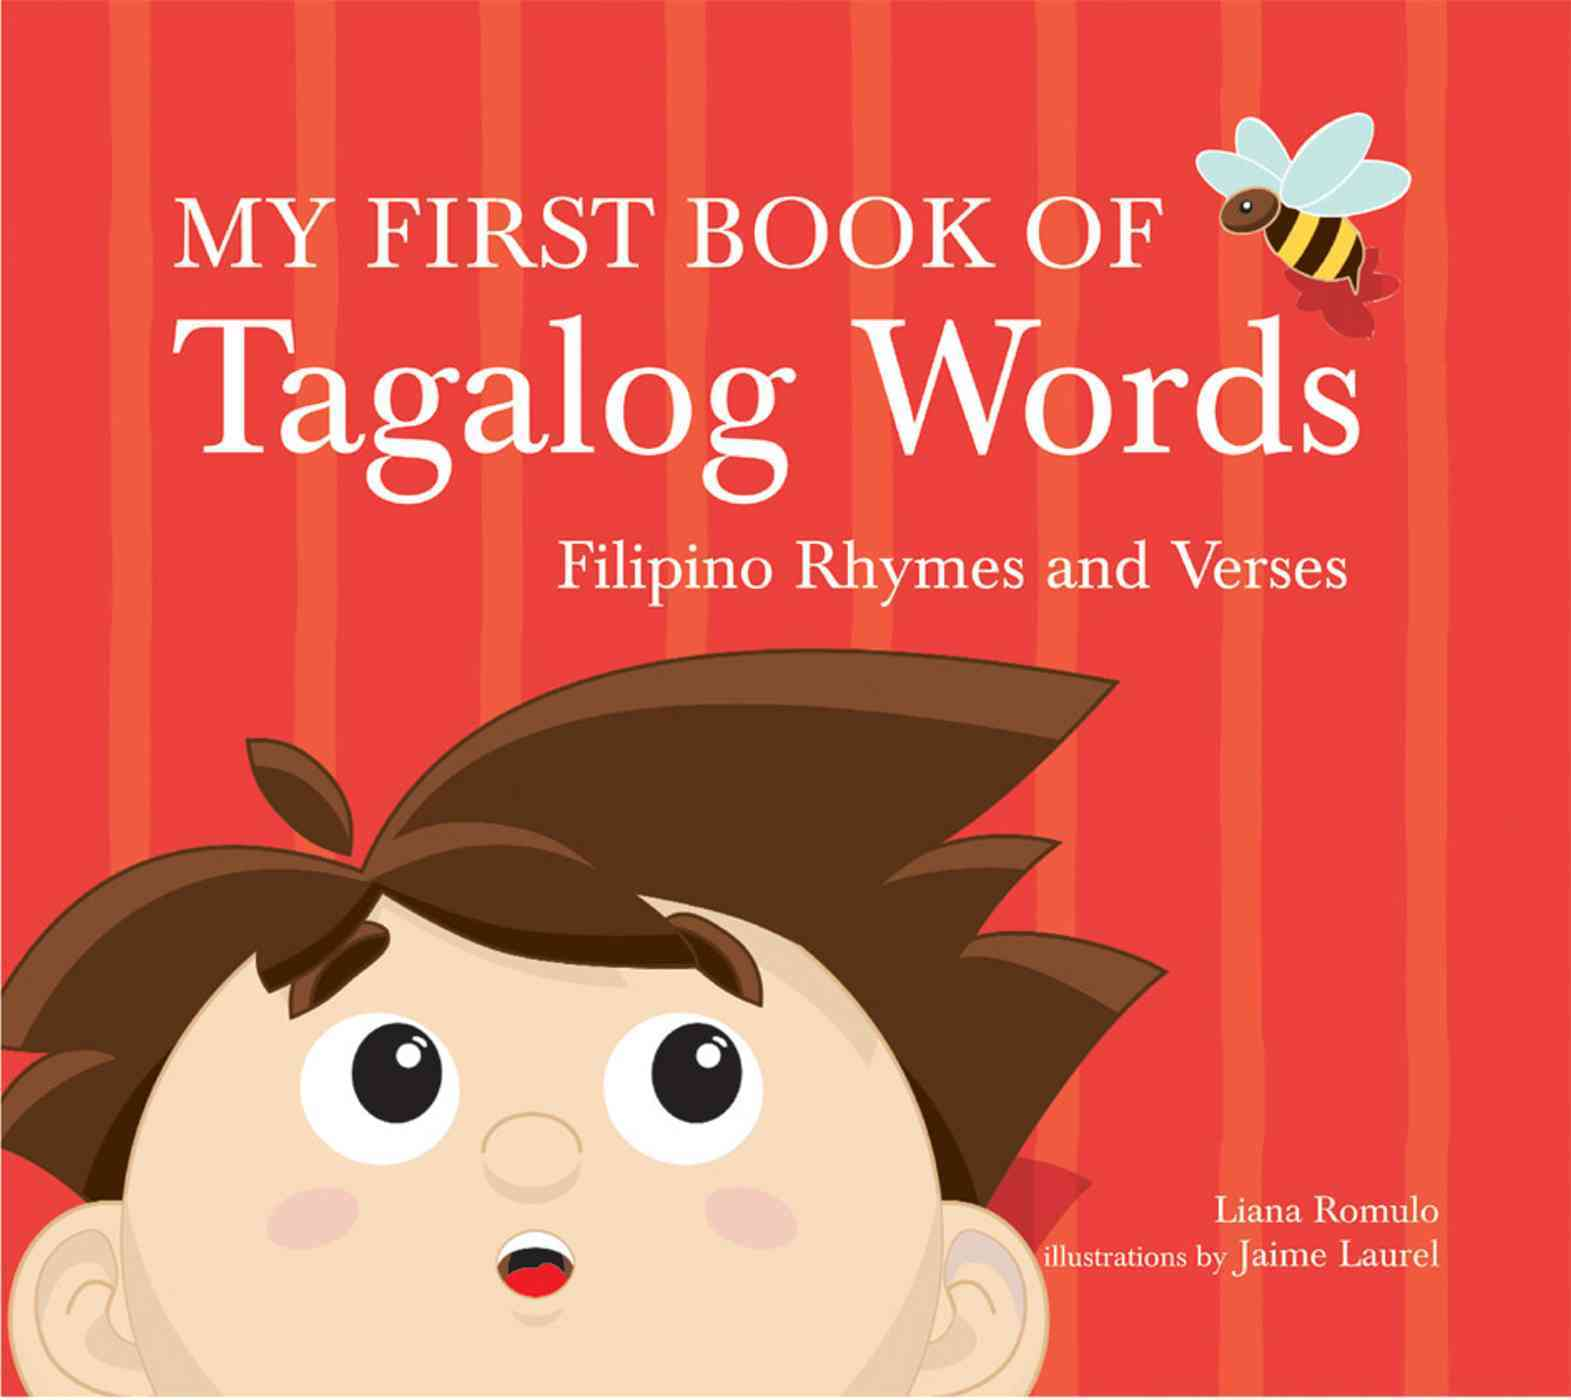 My First Book of Tagalog Words: Filipino Rhymes And Verses (Hardcover)